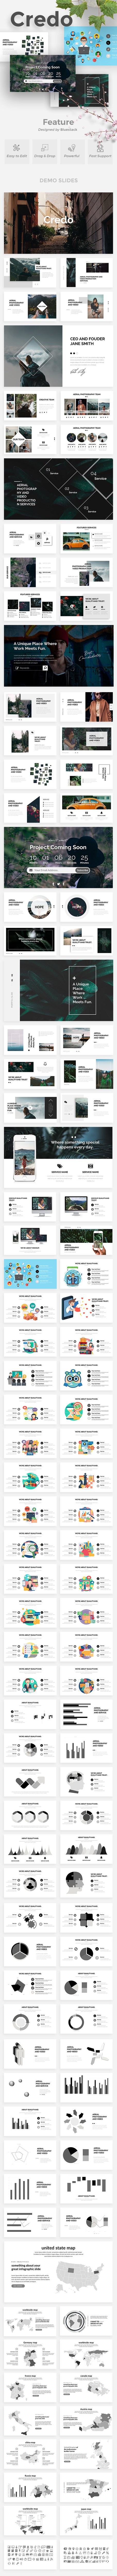 Credo Creative Keynote Template - Creative Keynote Templates